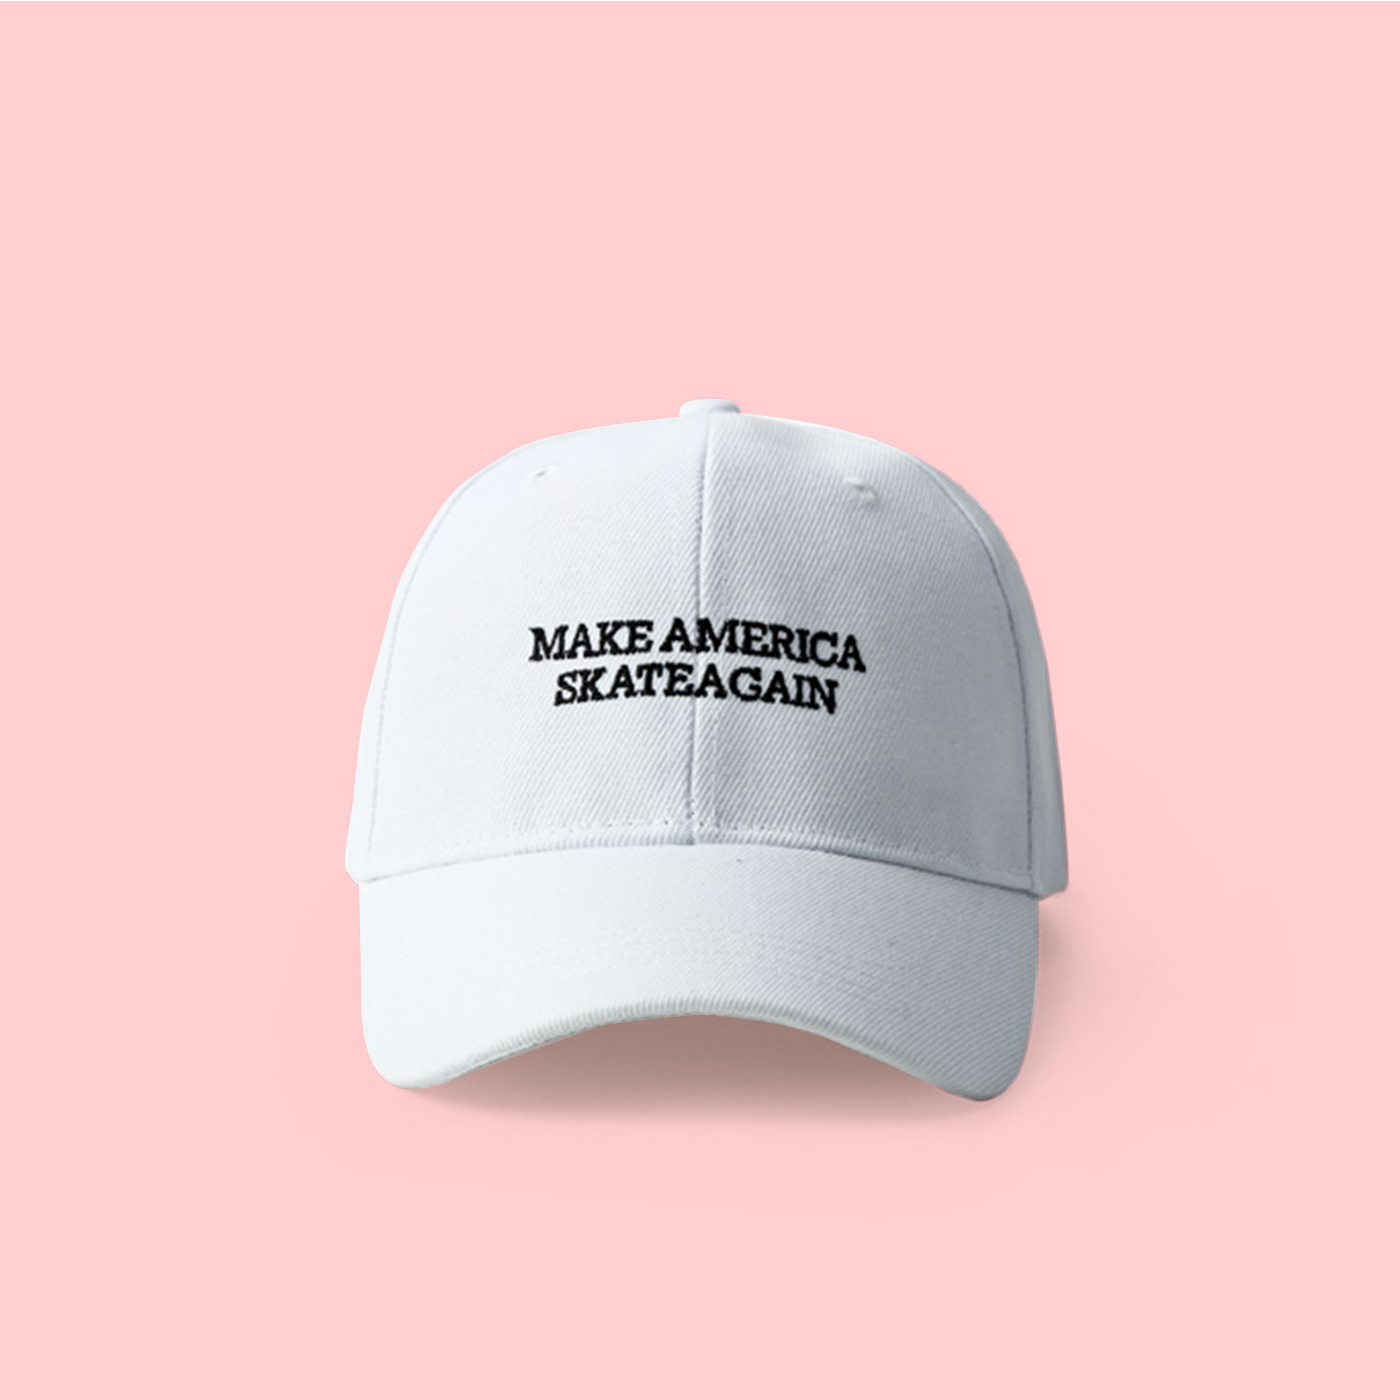 92b4ccbfbae UNISEX MAKE AMERICA SKATE AGAIN BASEBALL CAP IN WHITE on Storenvy